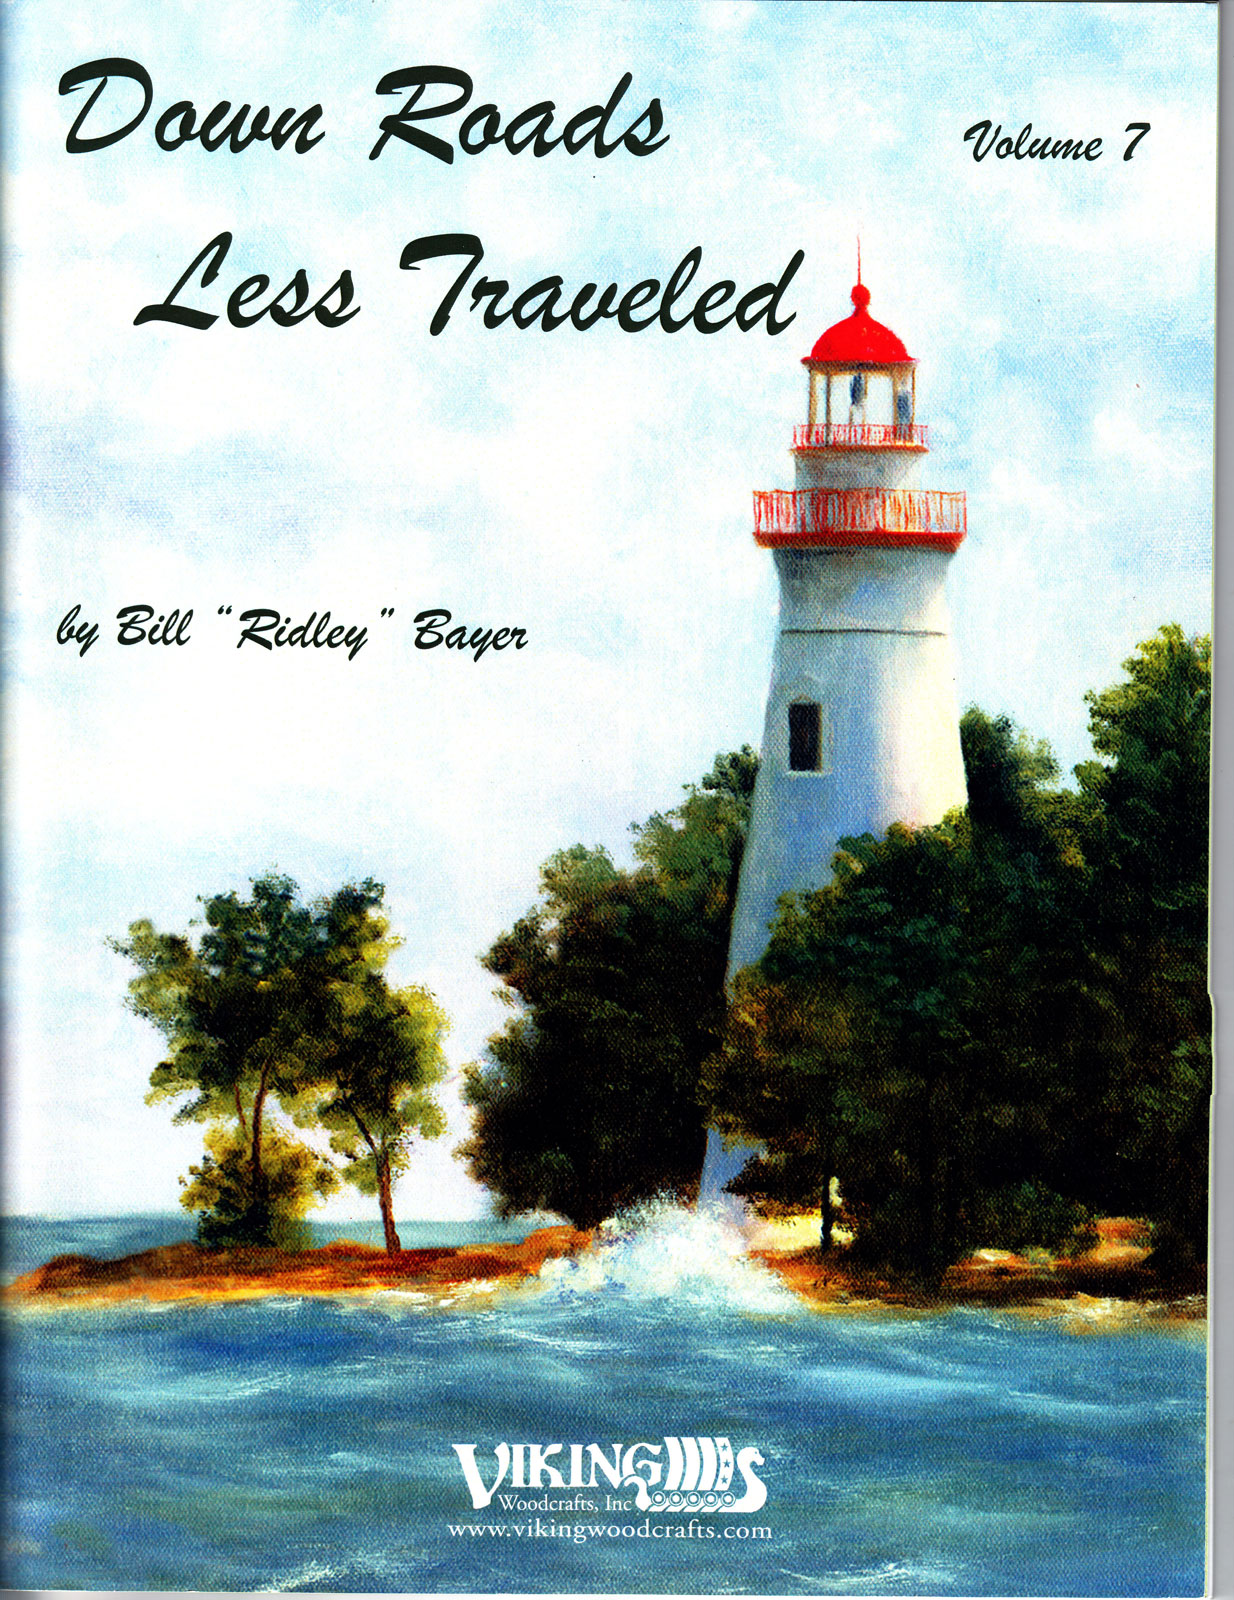 Down roads less traveled - Bill Ridley Bayer